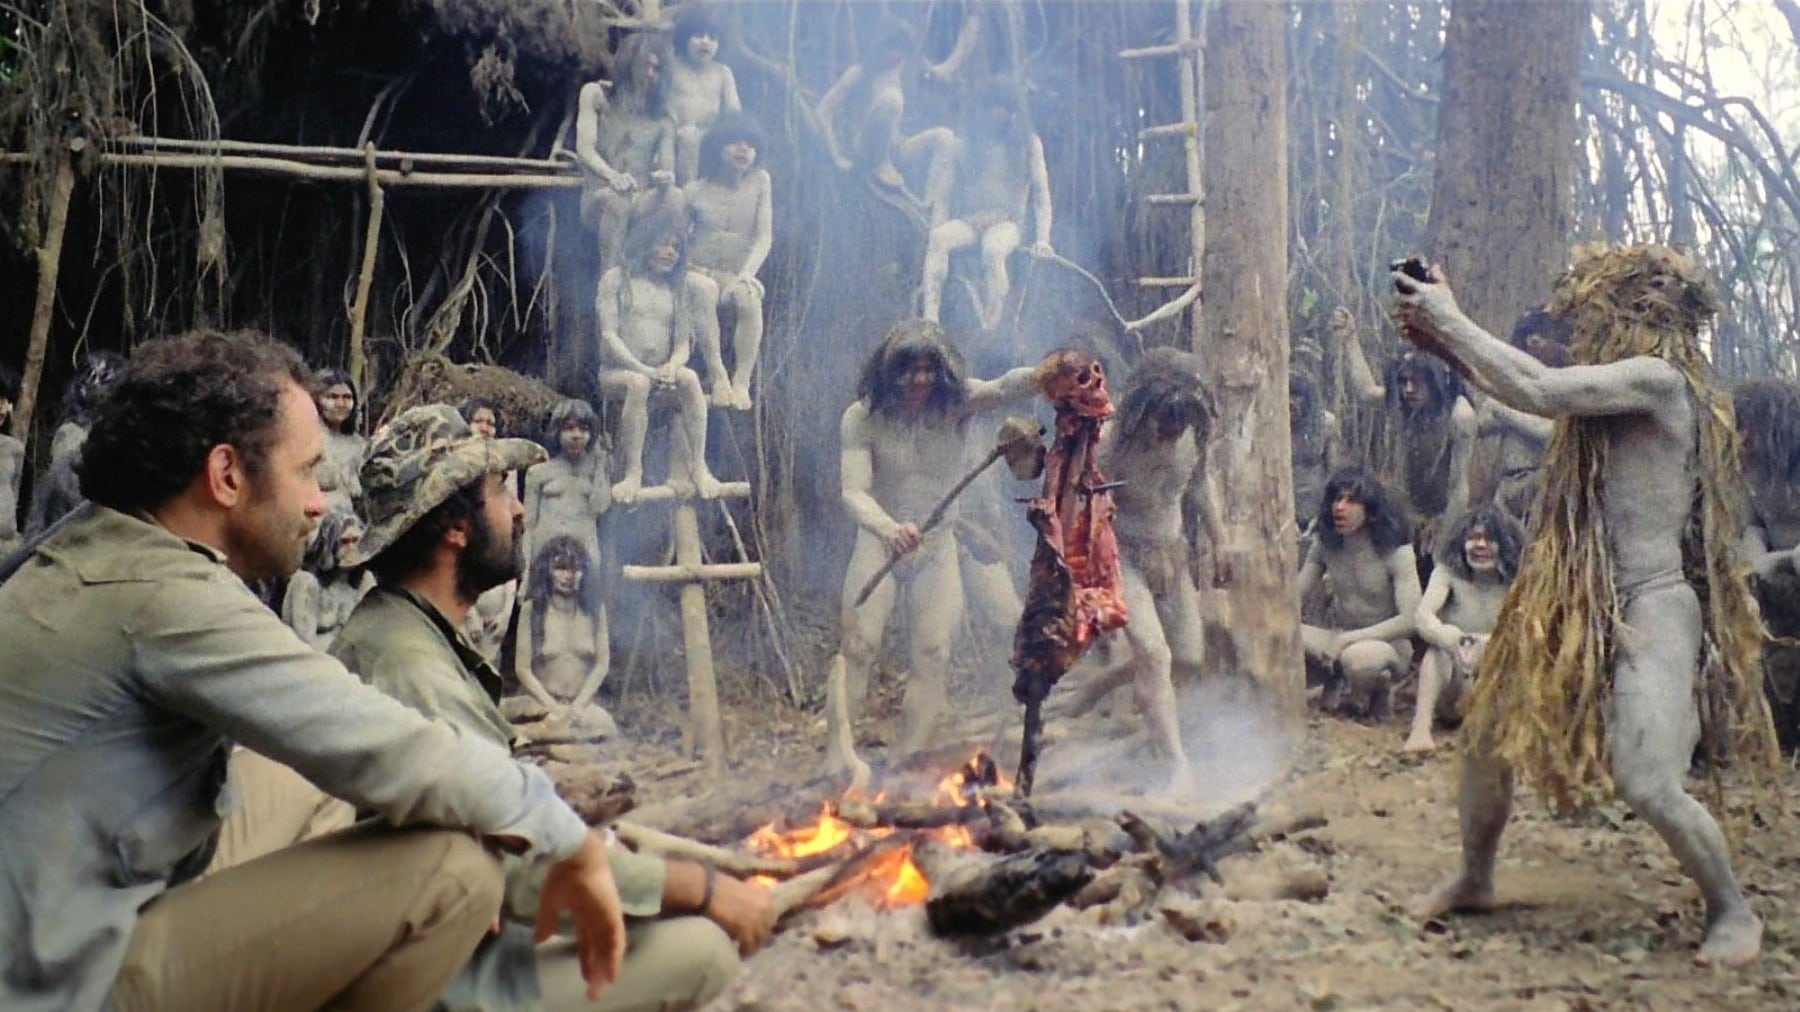 Watch Cannibal Holocaust (1980) Full Movie Online Free